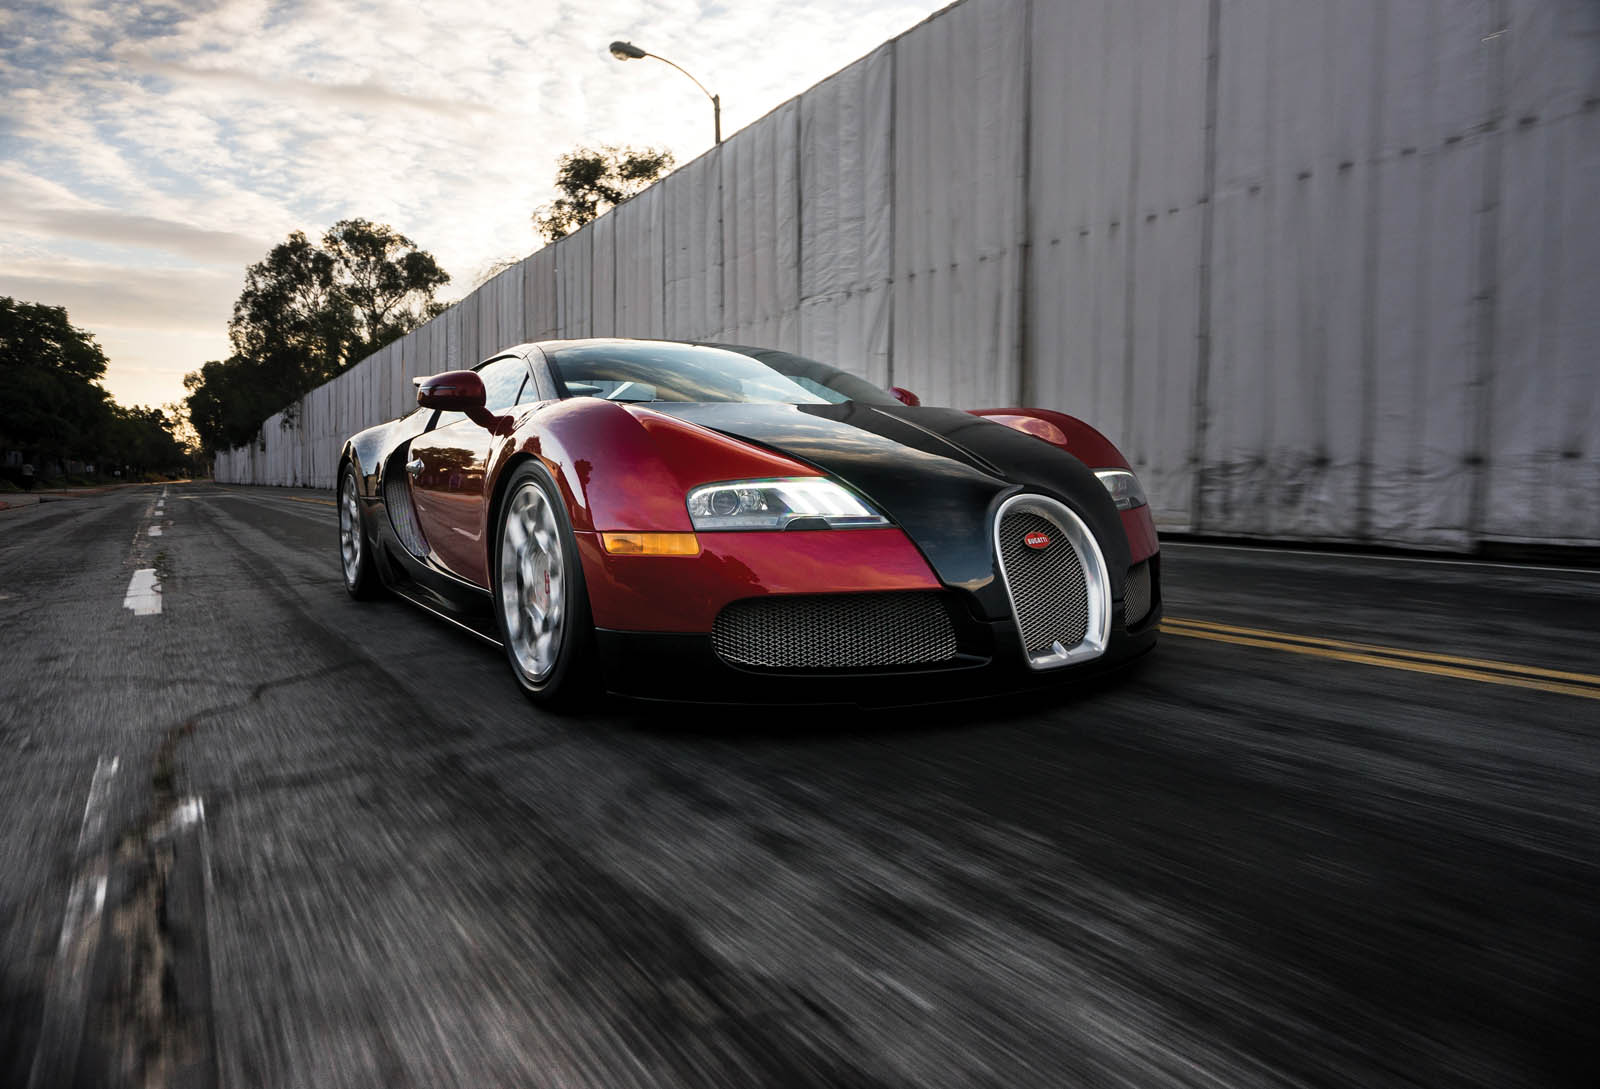 Bugatti_Veyron_Grand_Sport_for_sale_19